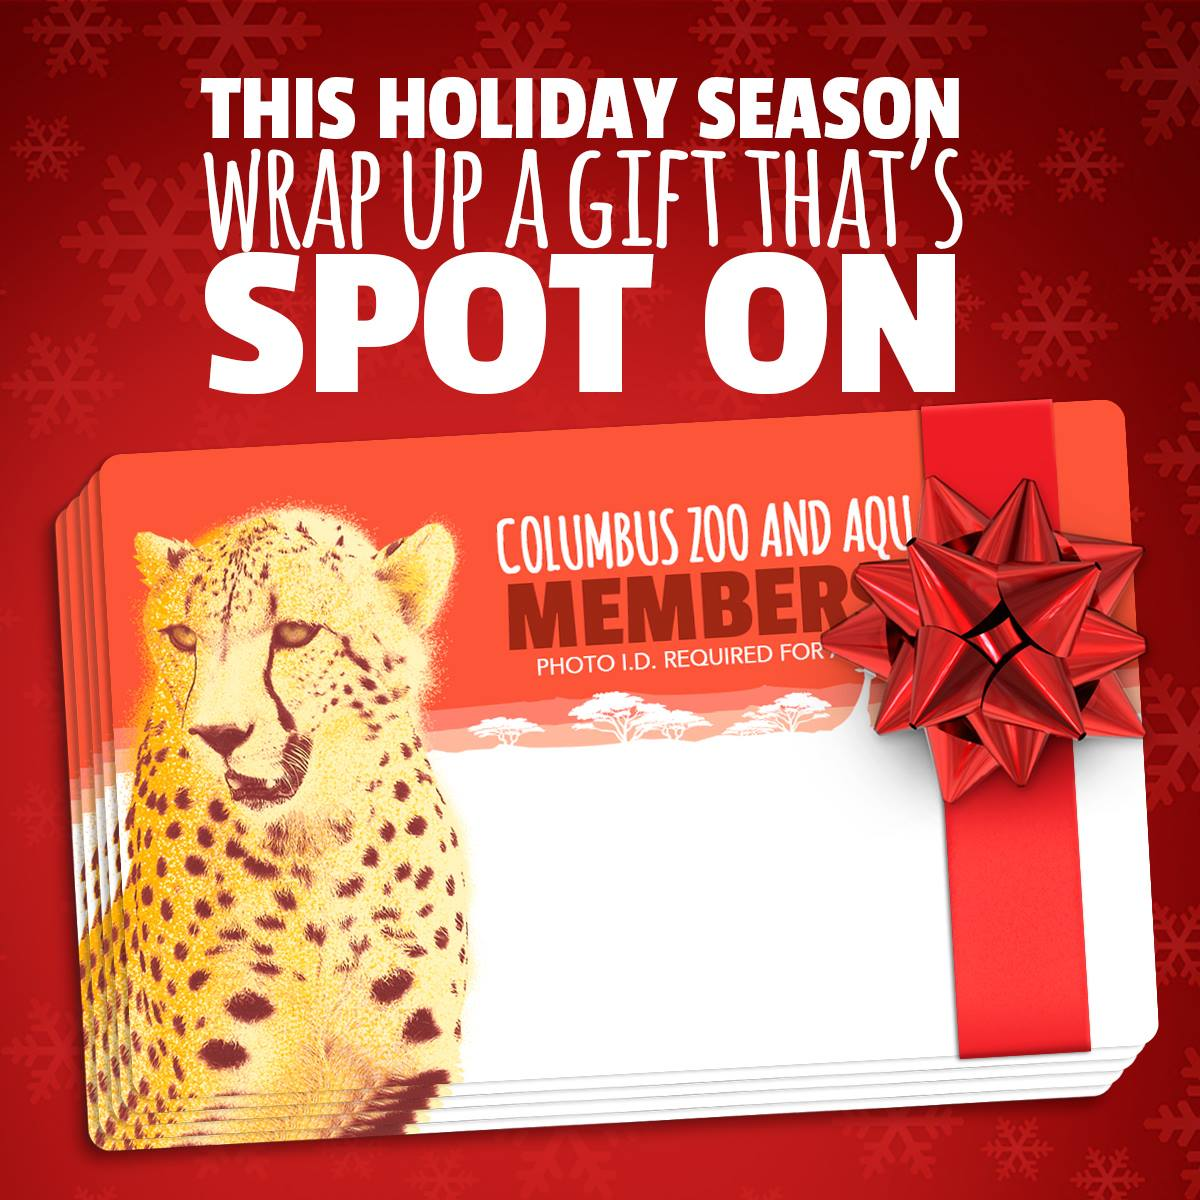 Columbus zoo on twitter wrap up a wild gift thats spot on today available online and valid for new members only get the deal here httpbitcolumbuszoomember and enter 17holiday in the promo code box under m4hsunfo